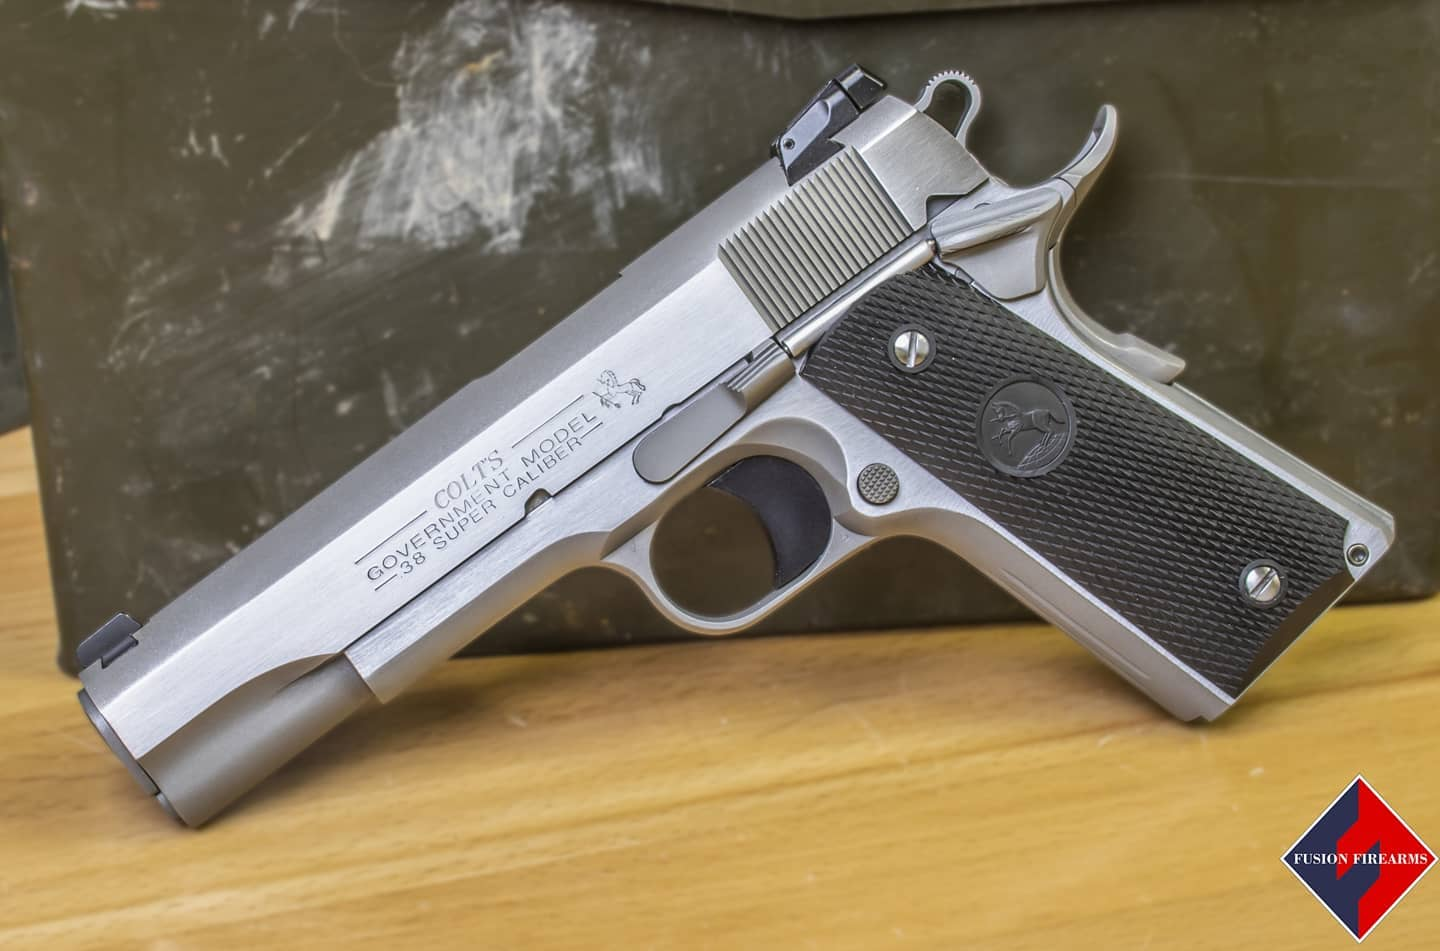 New Custom 10mm 1911 on Offer from Kinsey's and Fusion Firearms